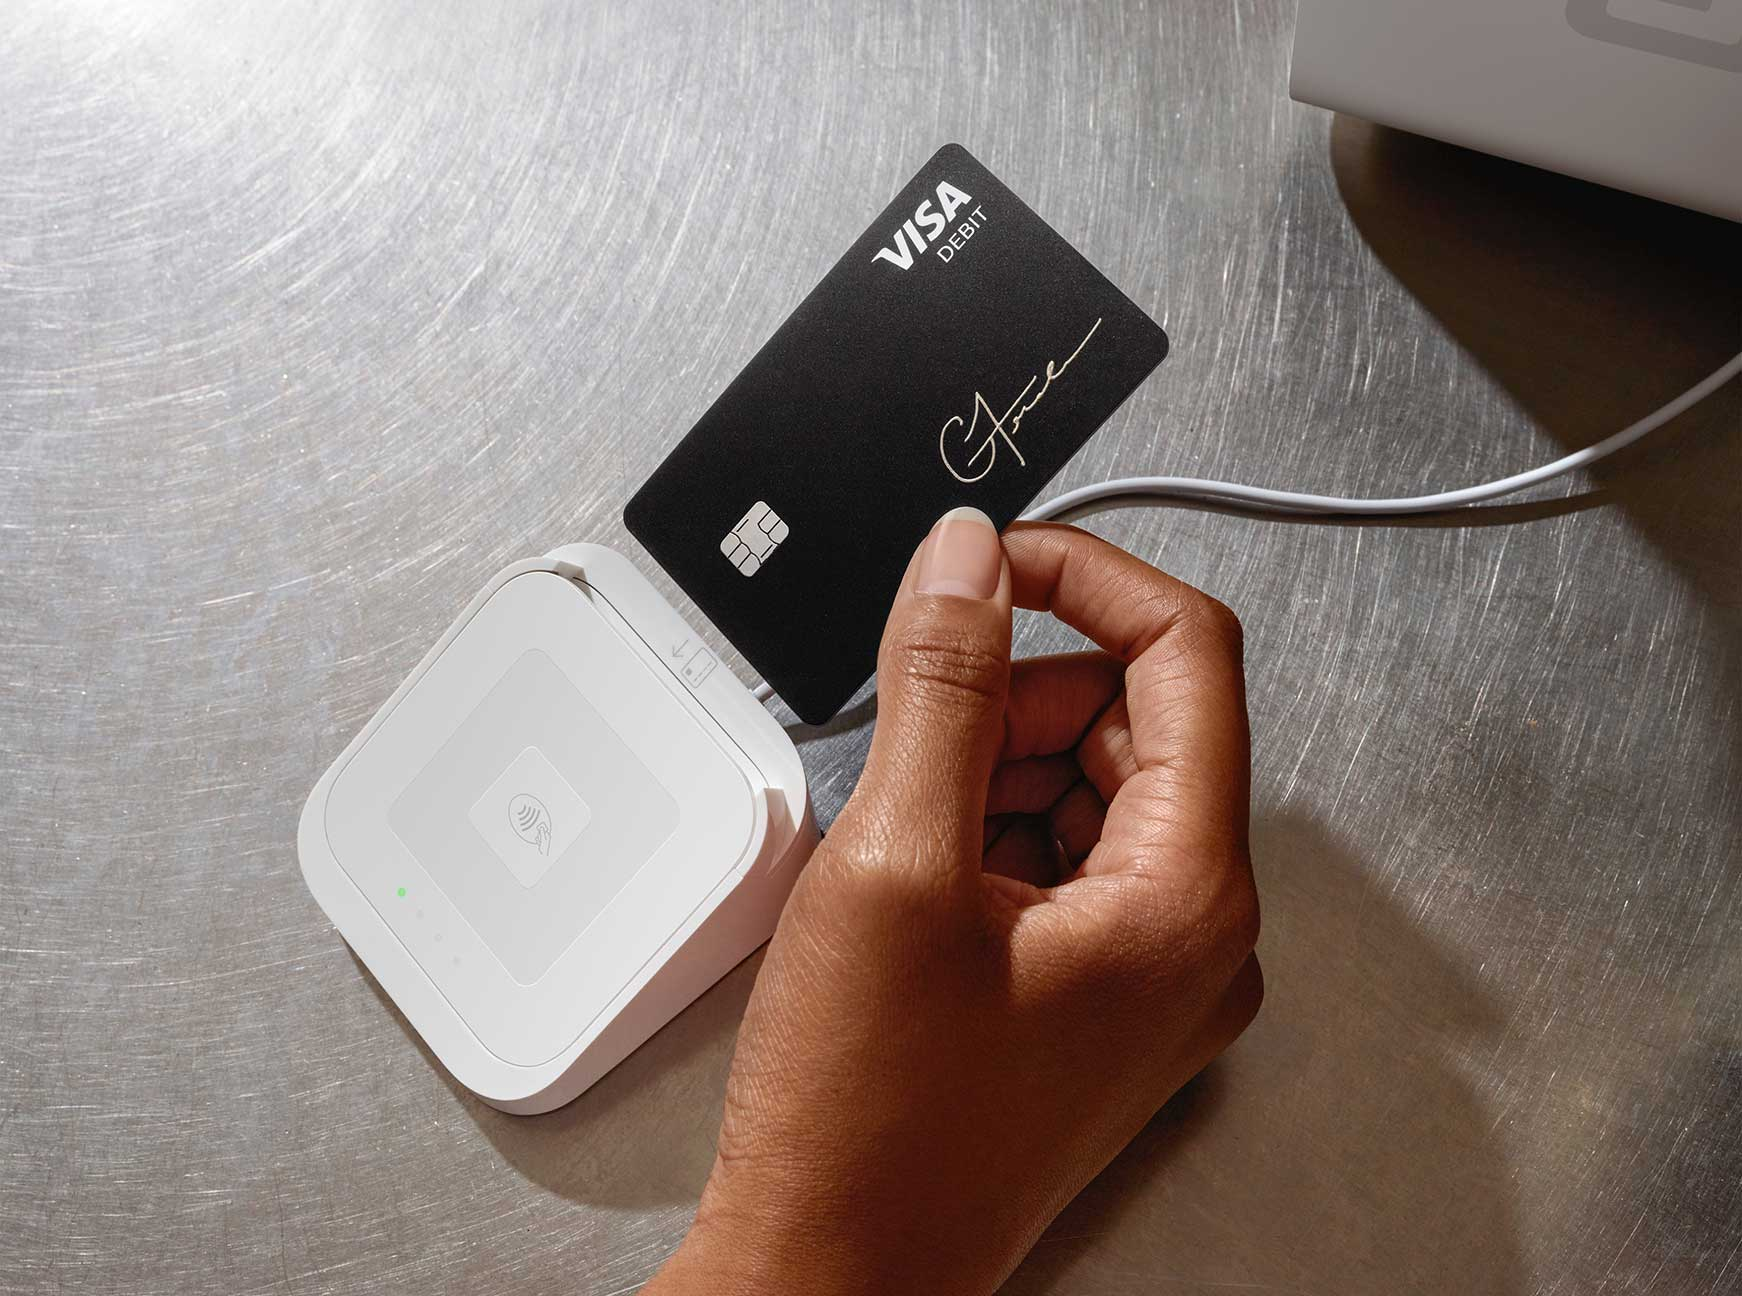 What credit cards does square accept?